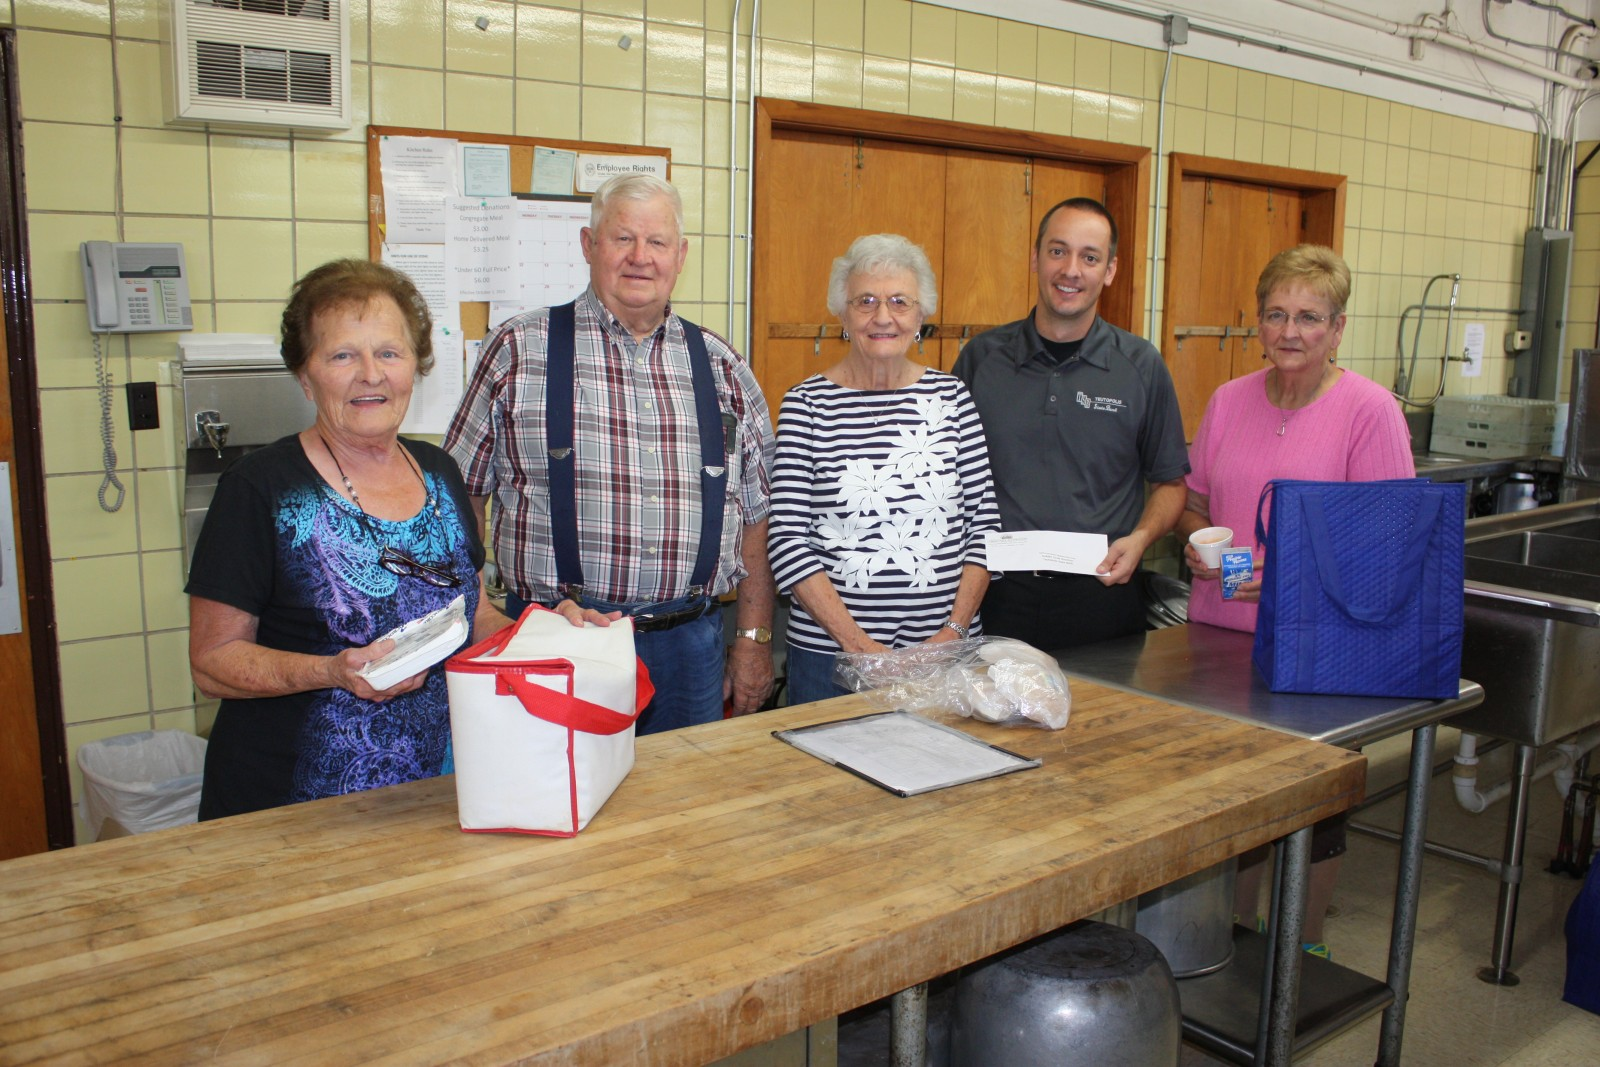 Representatives of the Teutopolis site of CEFS/Golden Circle Nutrition Program recently accepted a grant from Teutopolis State Bank. Pictured (L-R): Mable Harris, George Westendorf, Jeanette Westendorf, Jerry Runde (Teutopolis State Bank representative), and Nancy Hoene.